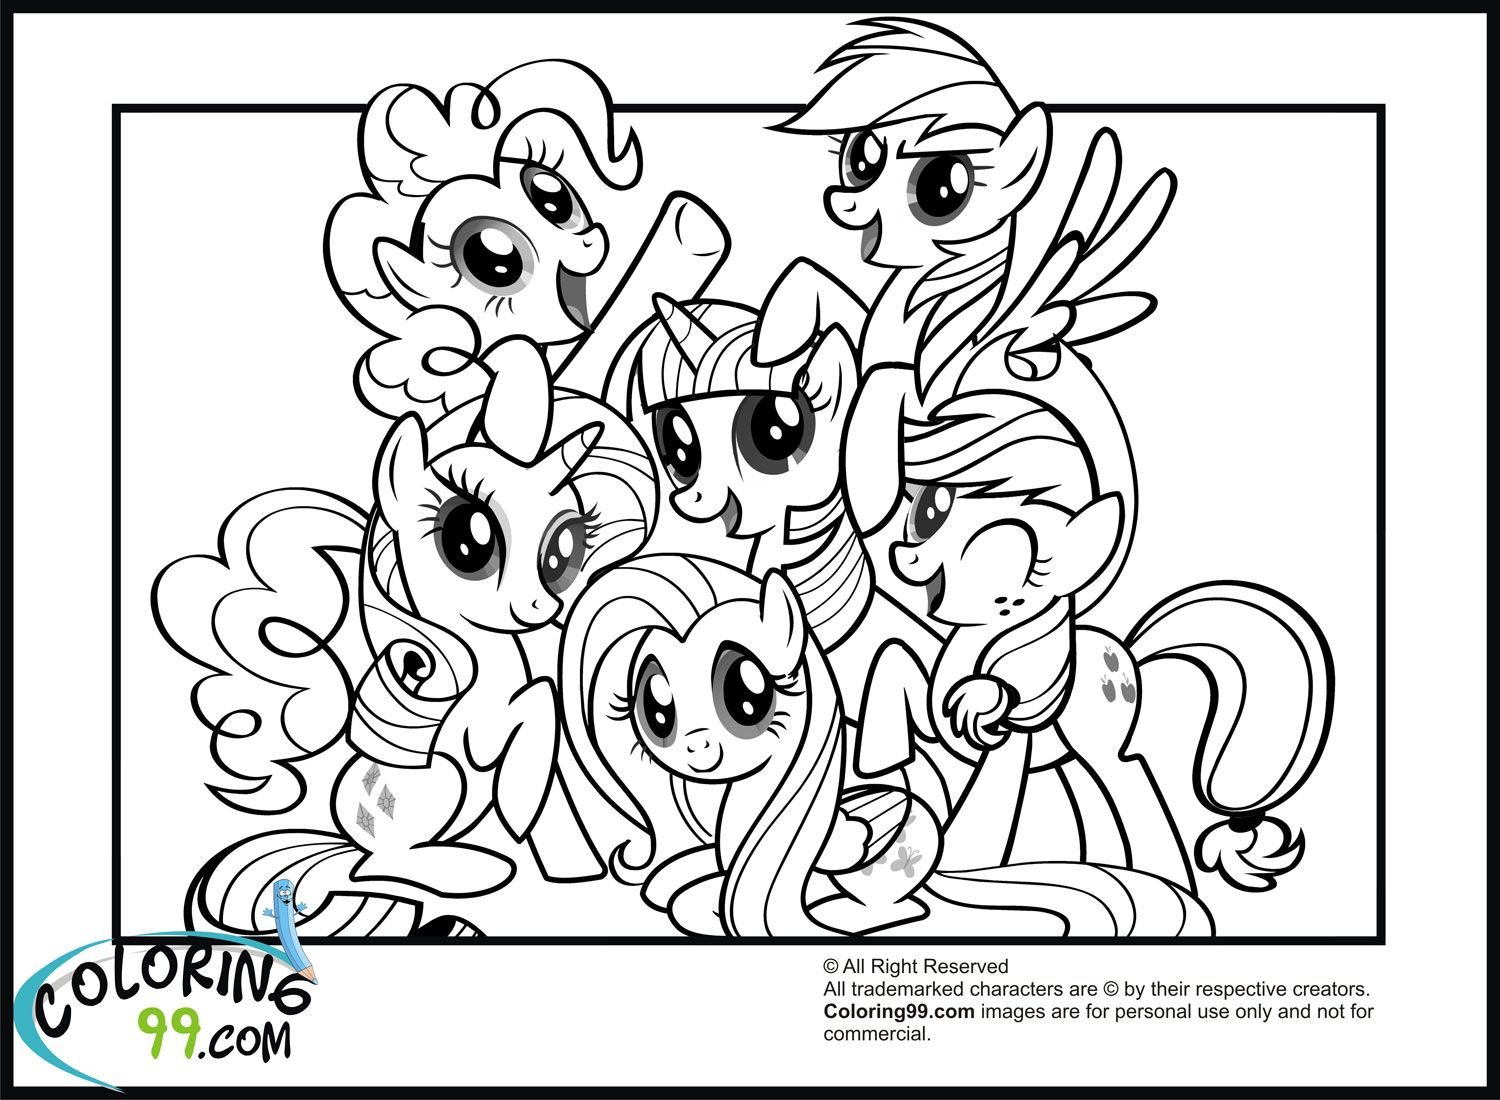 My little pony rainbow rocks coloring pages games - My Little Pony Coloring Page My Little Pony Coloring Page With My Little Pony Coloring Pages My Little Pony Coloring Pages Rainbow